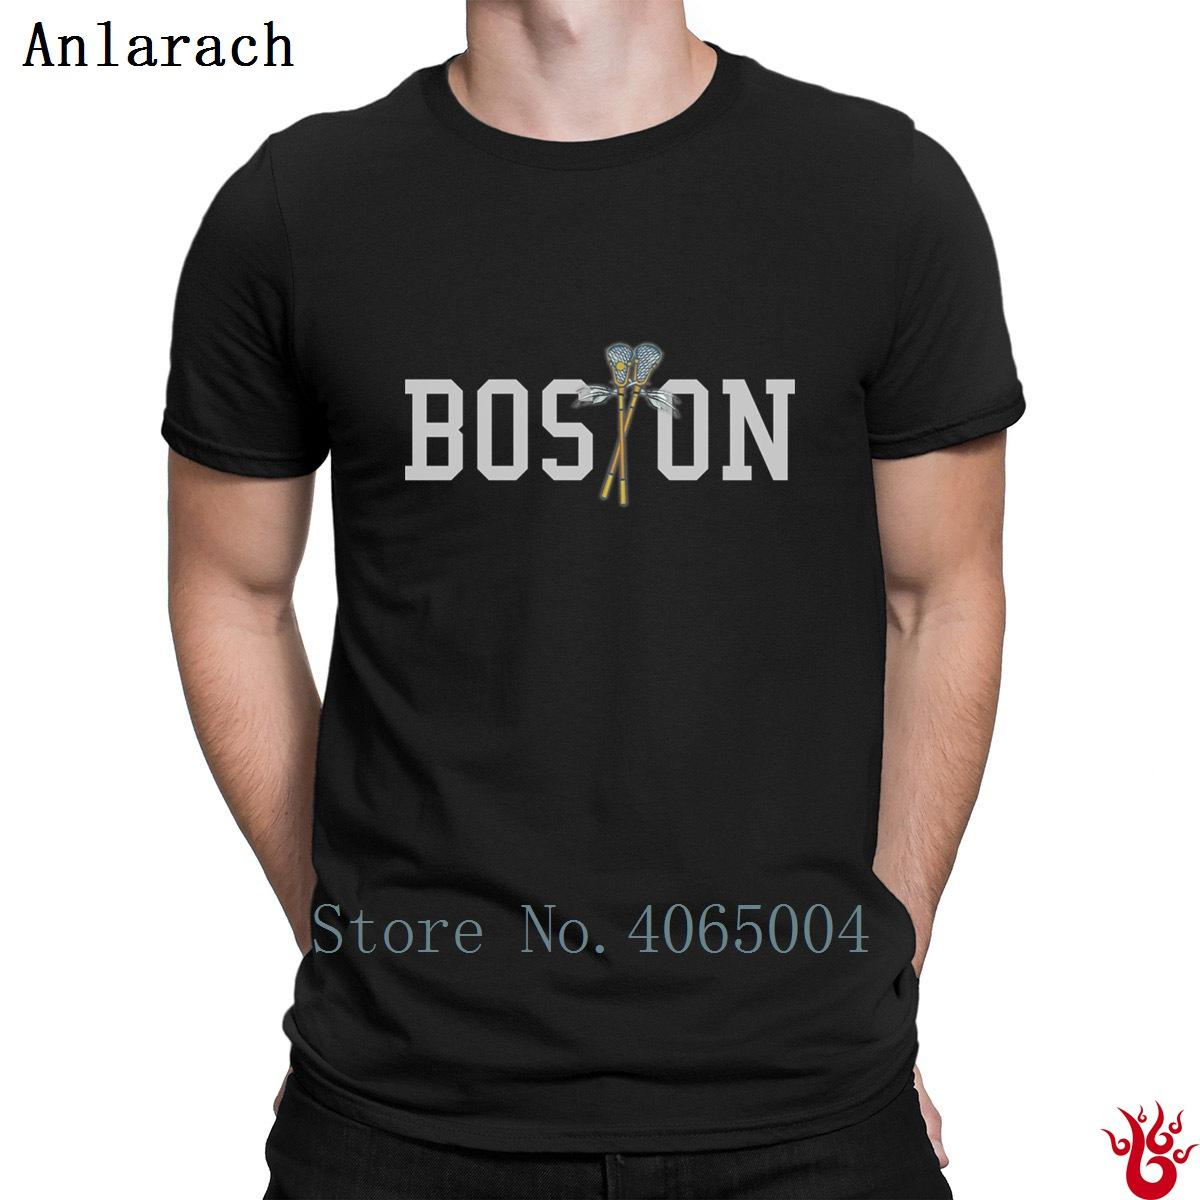 34ef97c8ebbdb Boston Lacrosse Apparel T Shirt Building Novelty Round Neck Tshirt For Men  2018 Fitness Standard Short Sleeve Hiphop Tops Vintage T Shirt Cute T  Shirts From ...